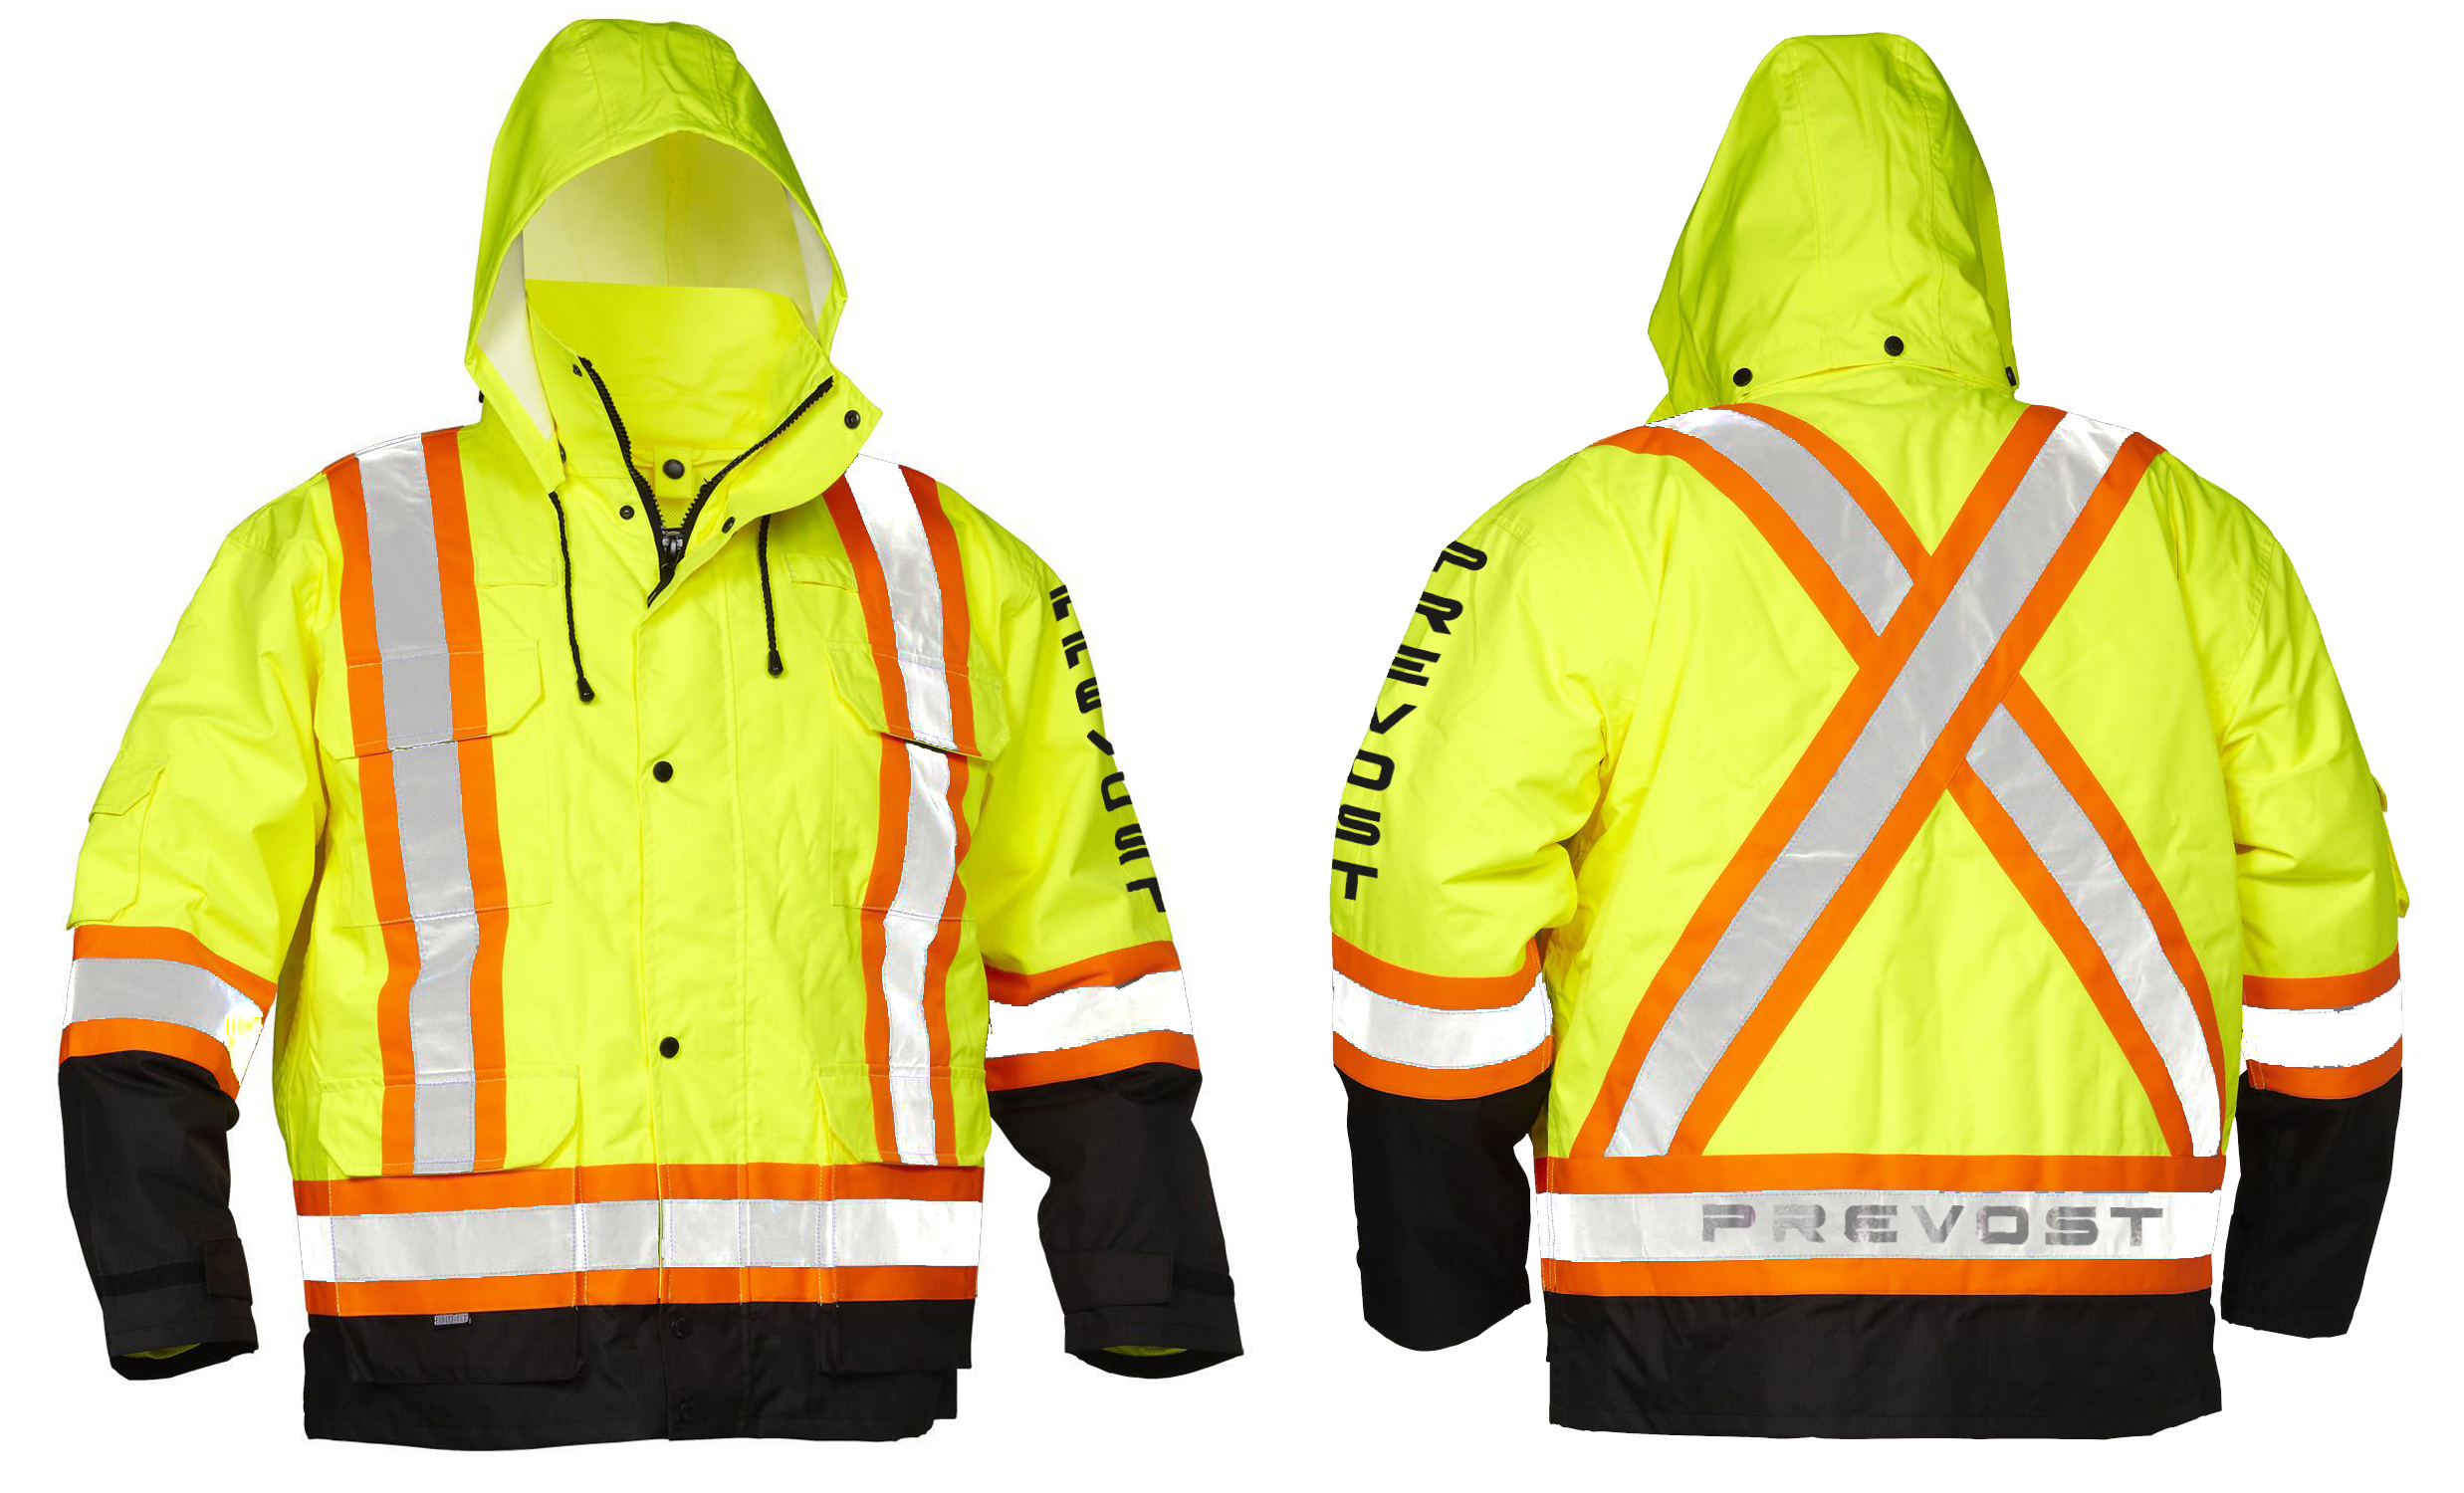 Reflective 4 in 1 Safety Jacket